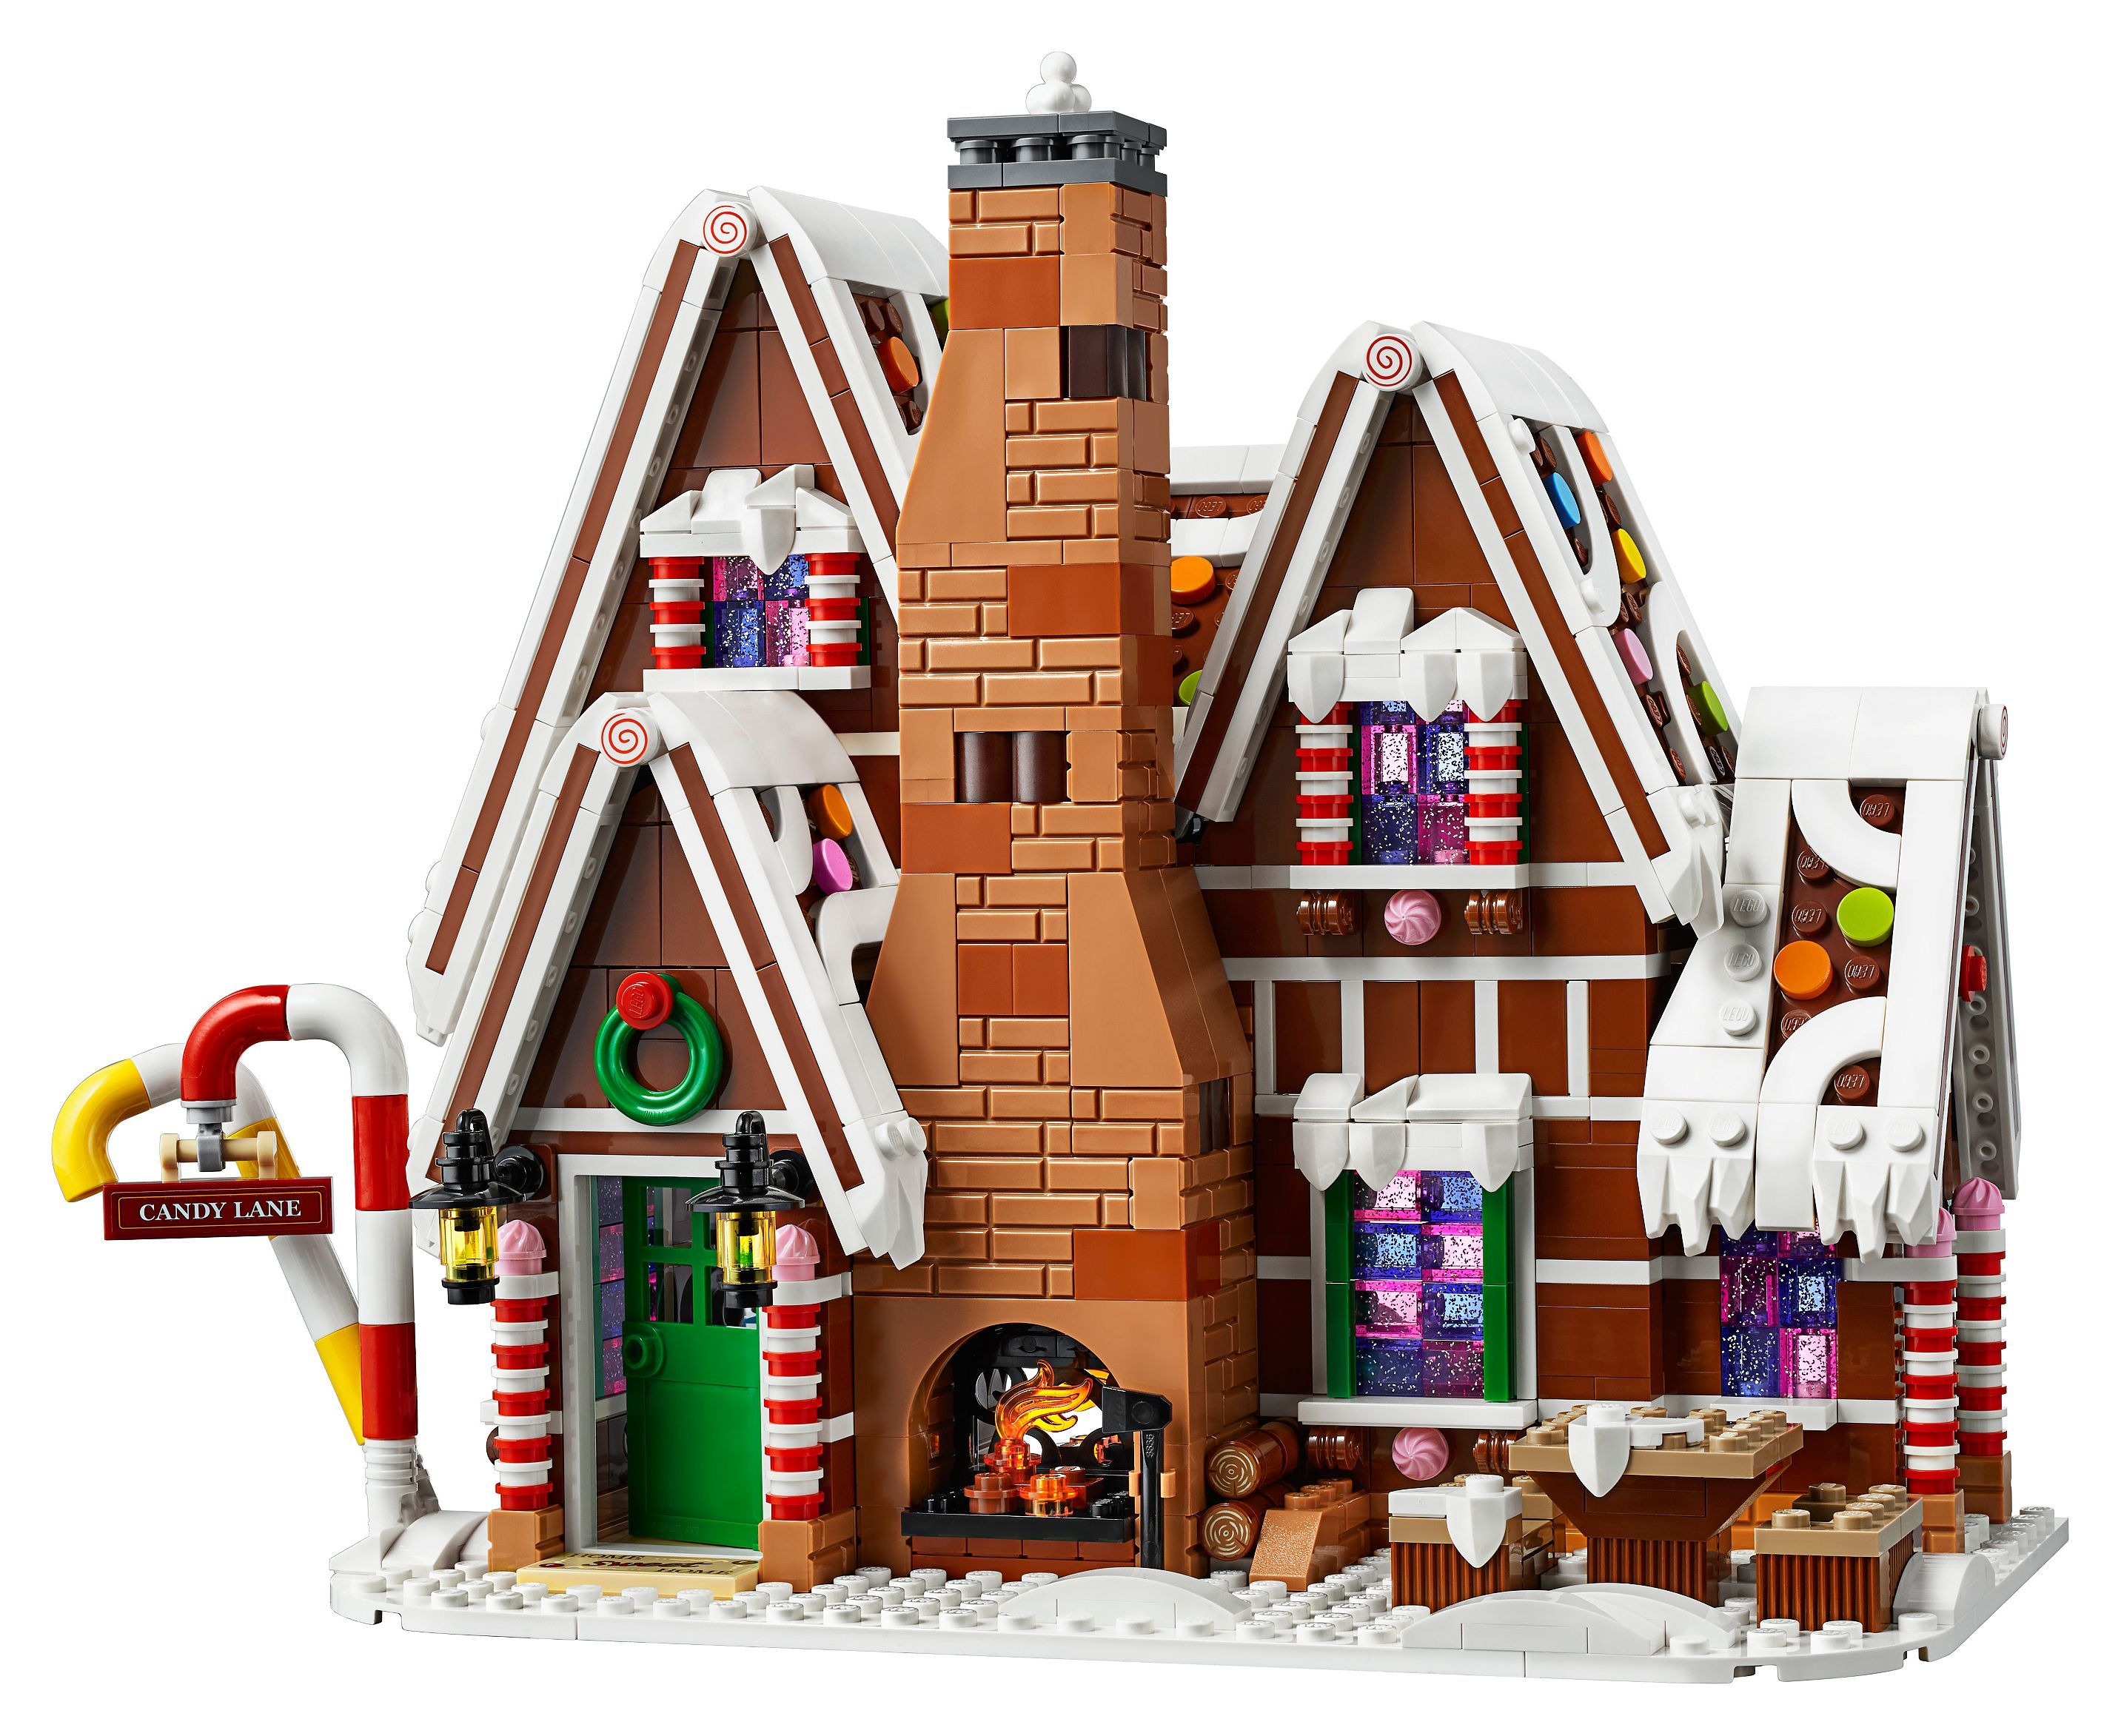 Gingerbread House 10267 Creator Expert Buy Online At The Official Lego Shop Ca In 2020 Lego Gingerbread House Gingerbread House Lego Christmas